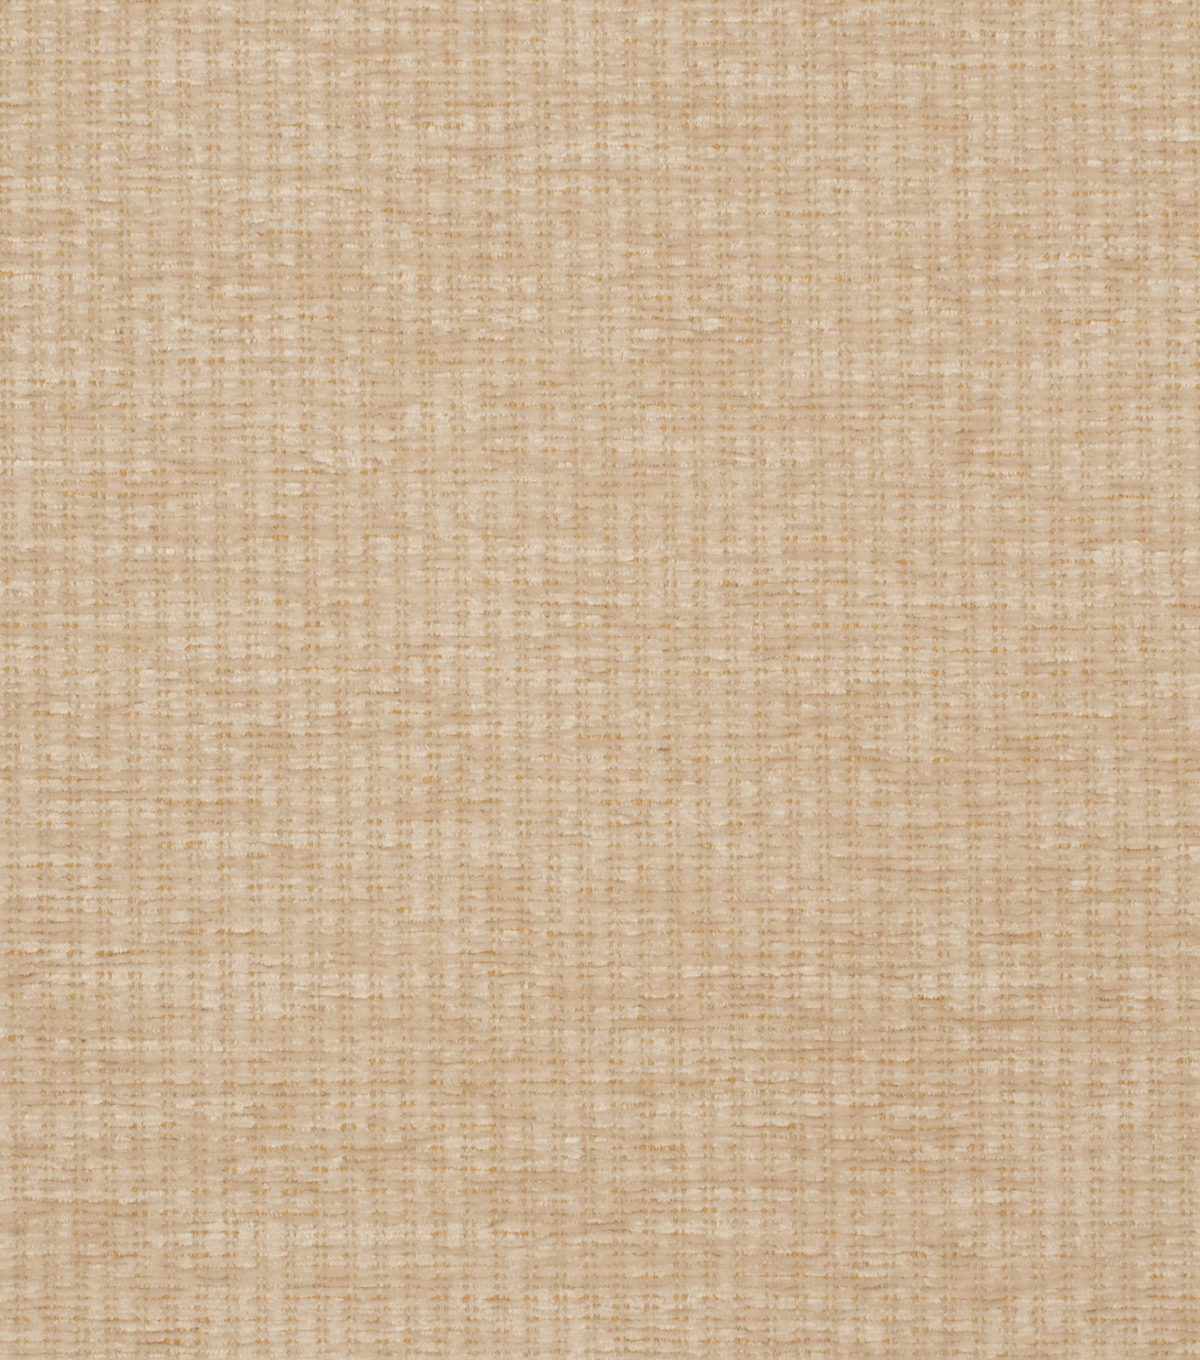 Eaton Square Multi-Purpose Decor Fabric 54\u0022-Oswaldo/Cloud